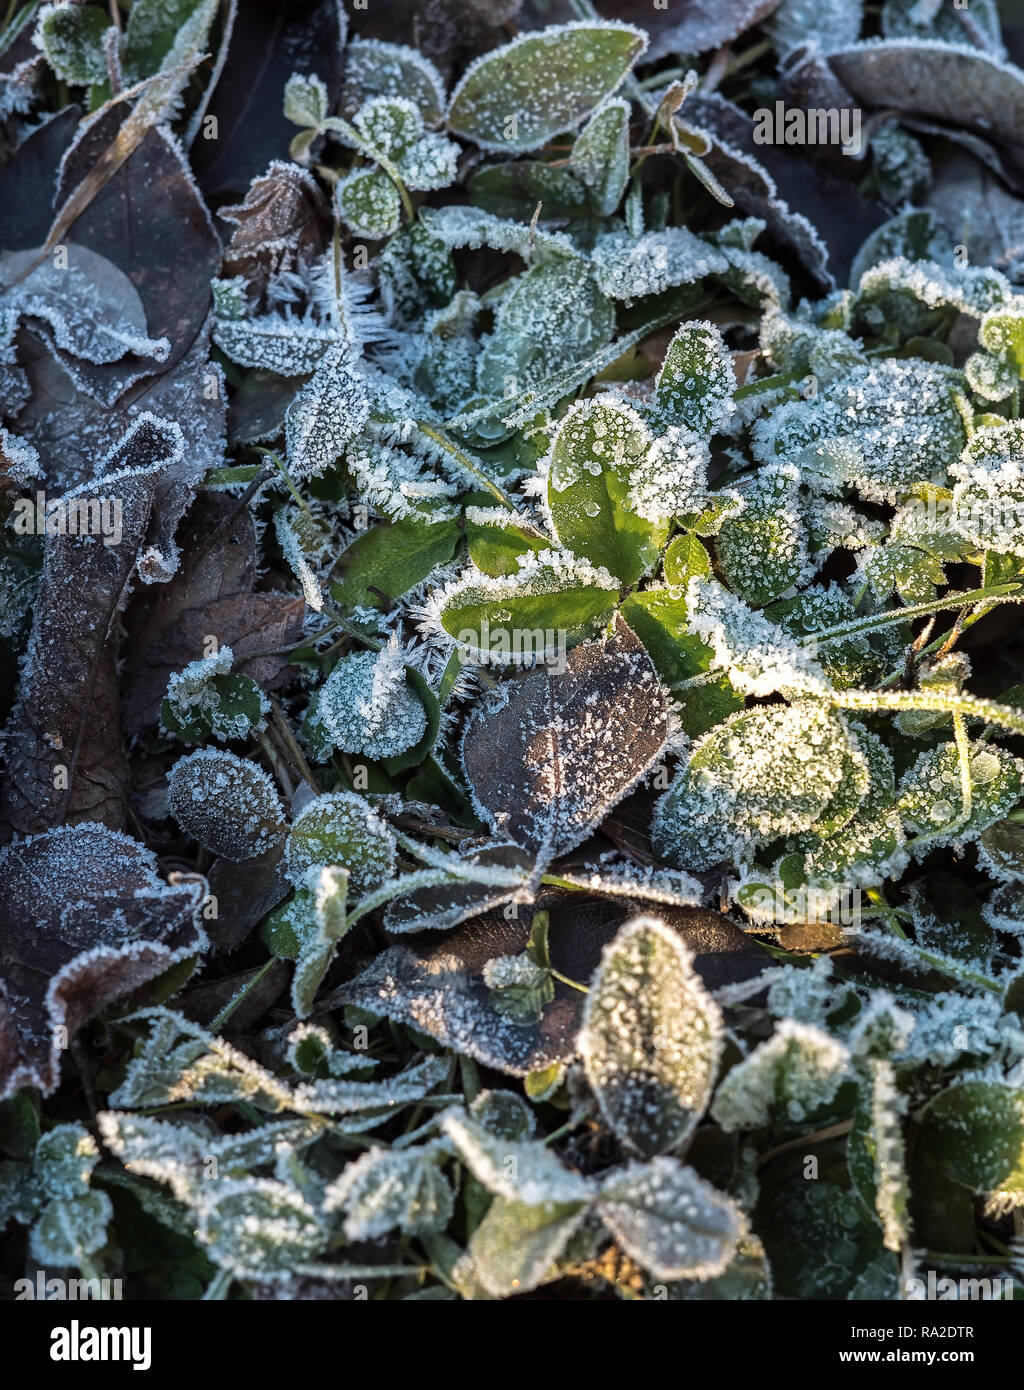 Detail of many different frozen and iced crisp leaves on the ground covered in frosted hoar frost a cold fresh winter morning - Stock Image